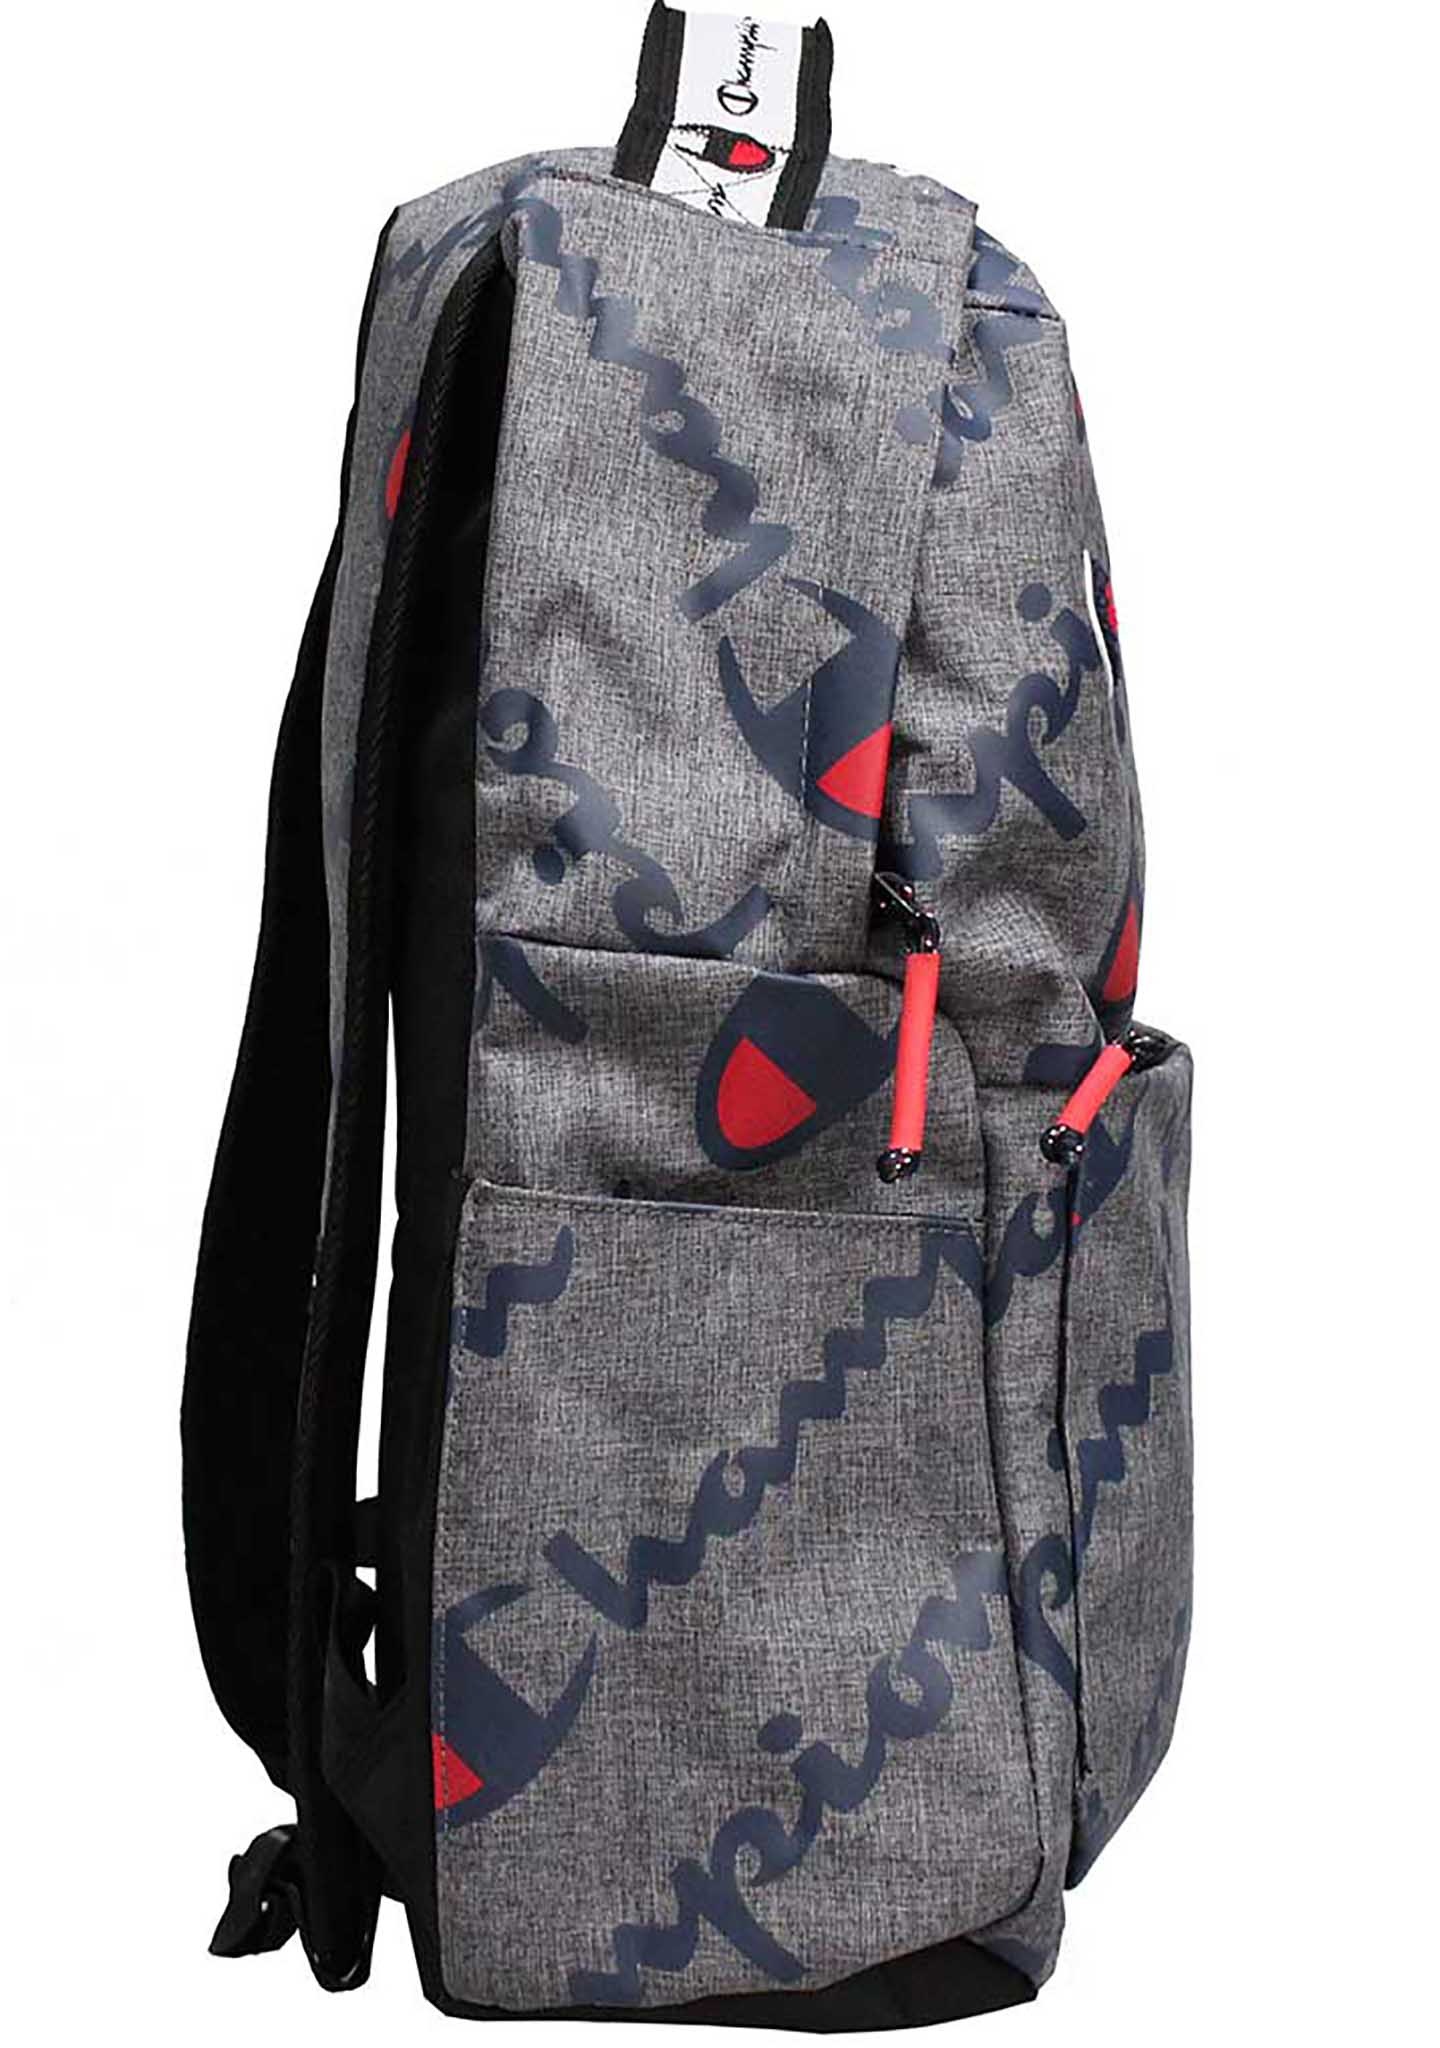 Advocate Backpack in Dark Grey